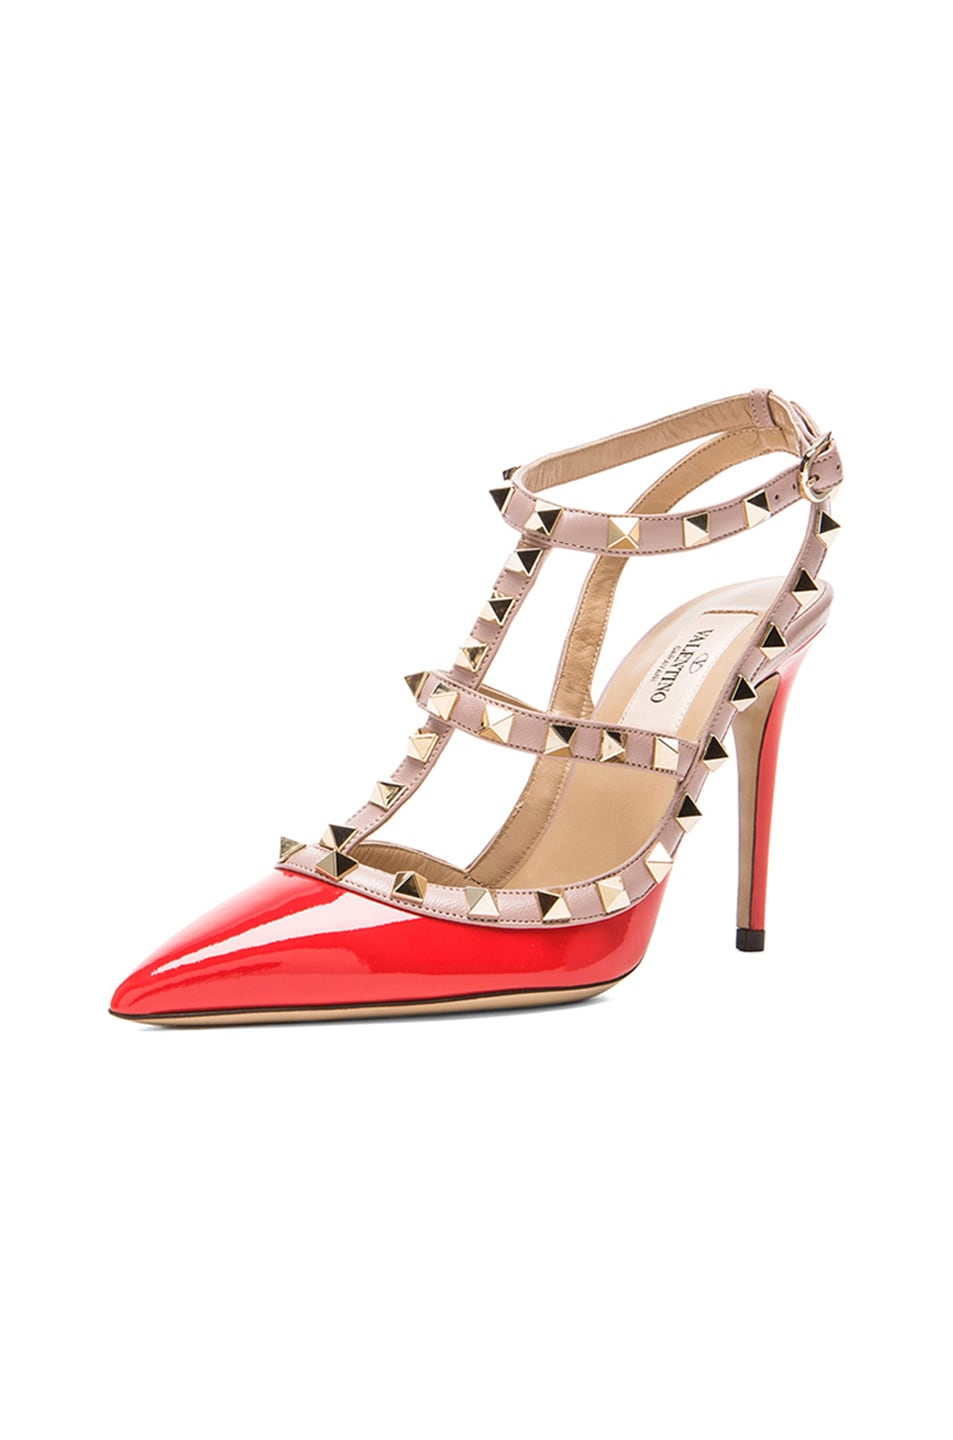 Image 2 of Valentino Rockstud Patent Slingbacks T.100 in Orange